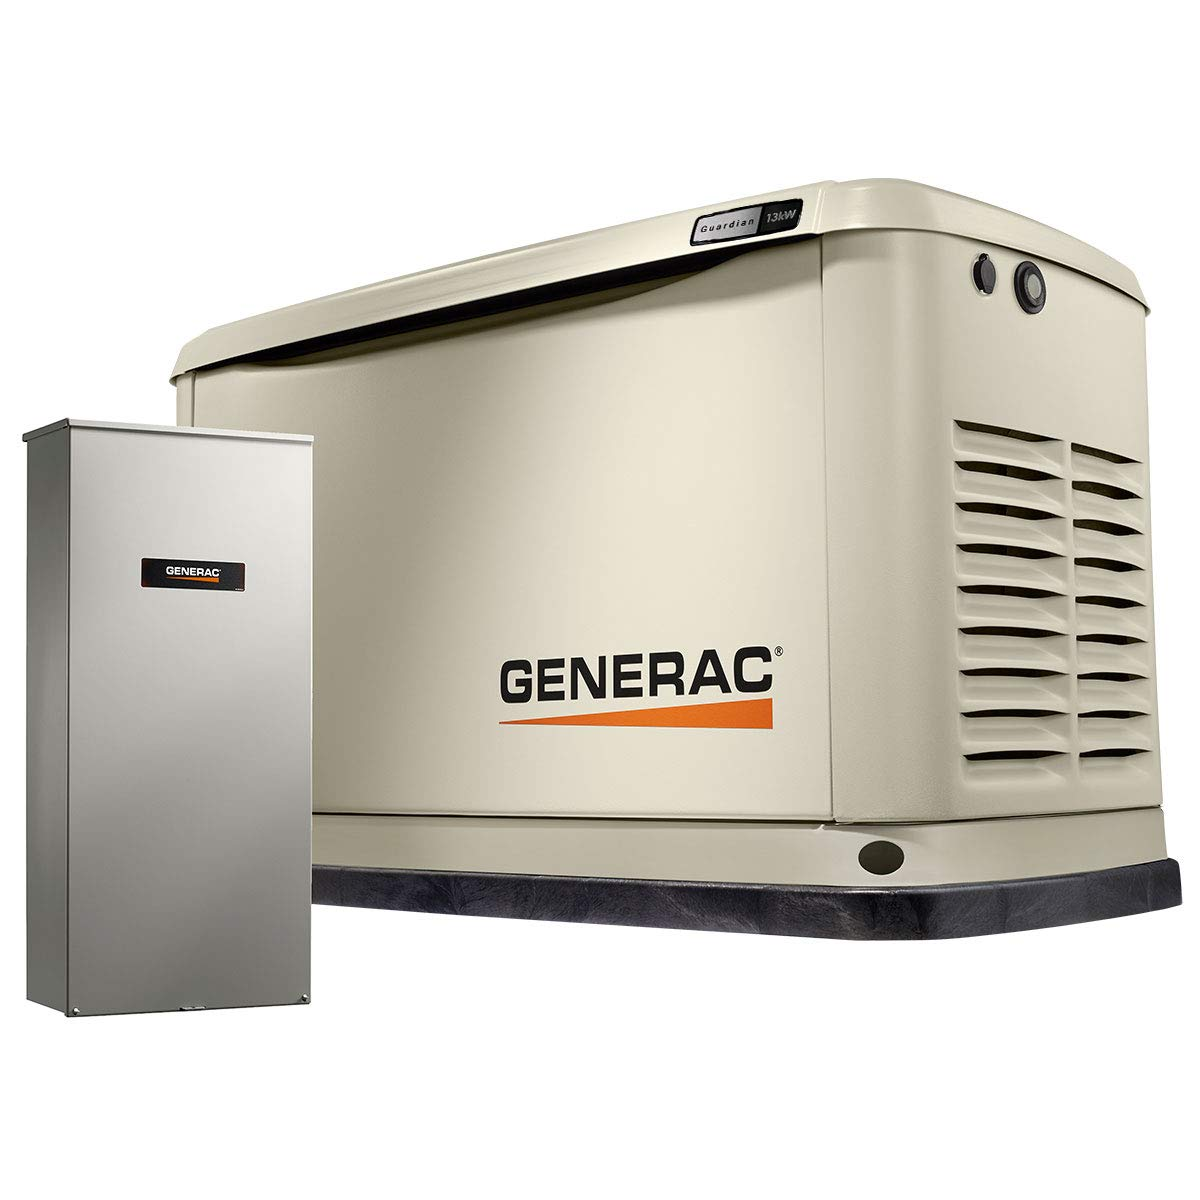 Generac 7175 Guardian 13kW Home Backup Generator with Whole House Switch WiFi-Enabled by Generac